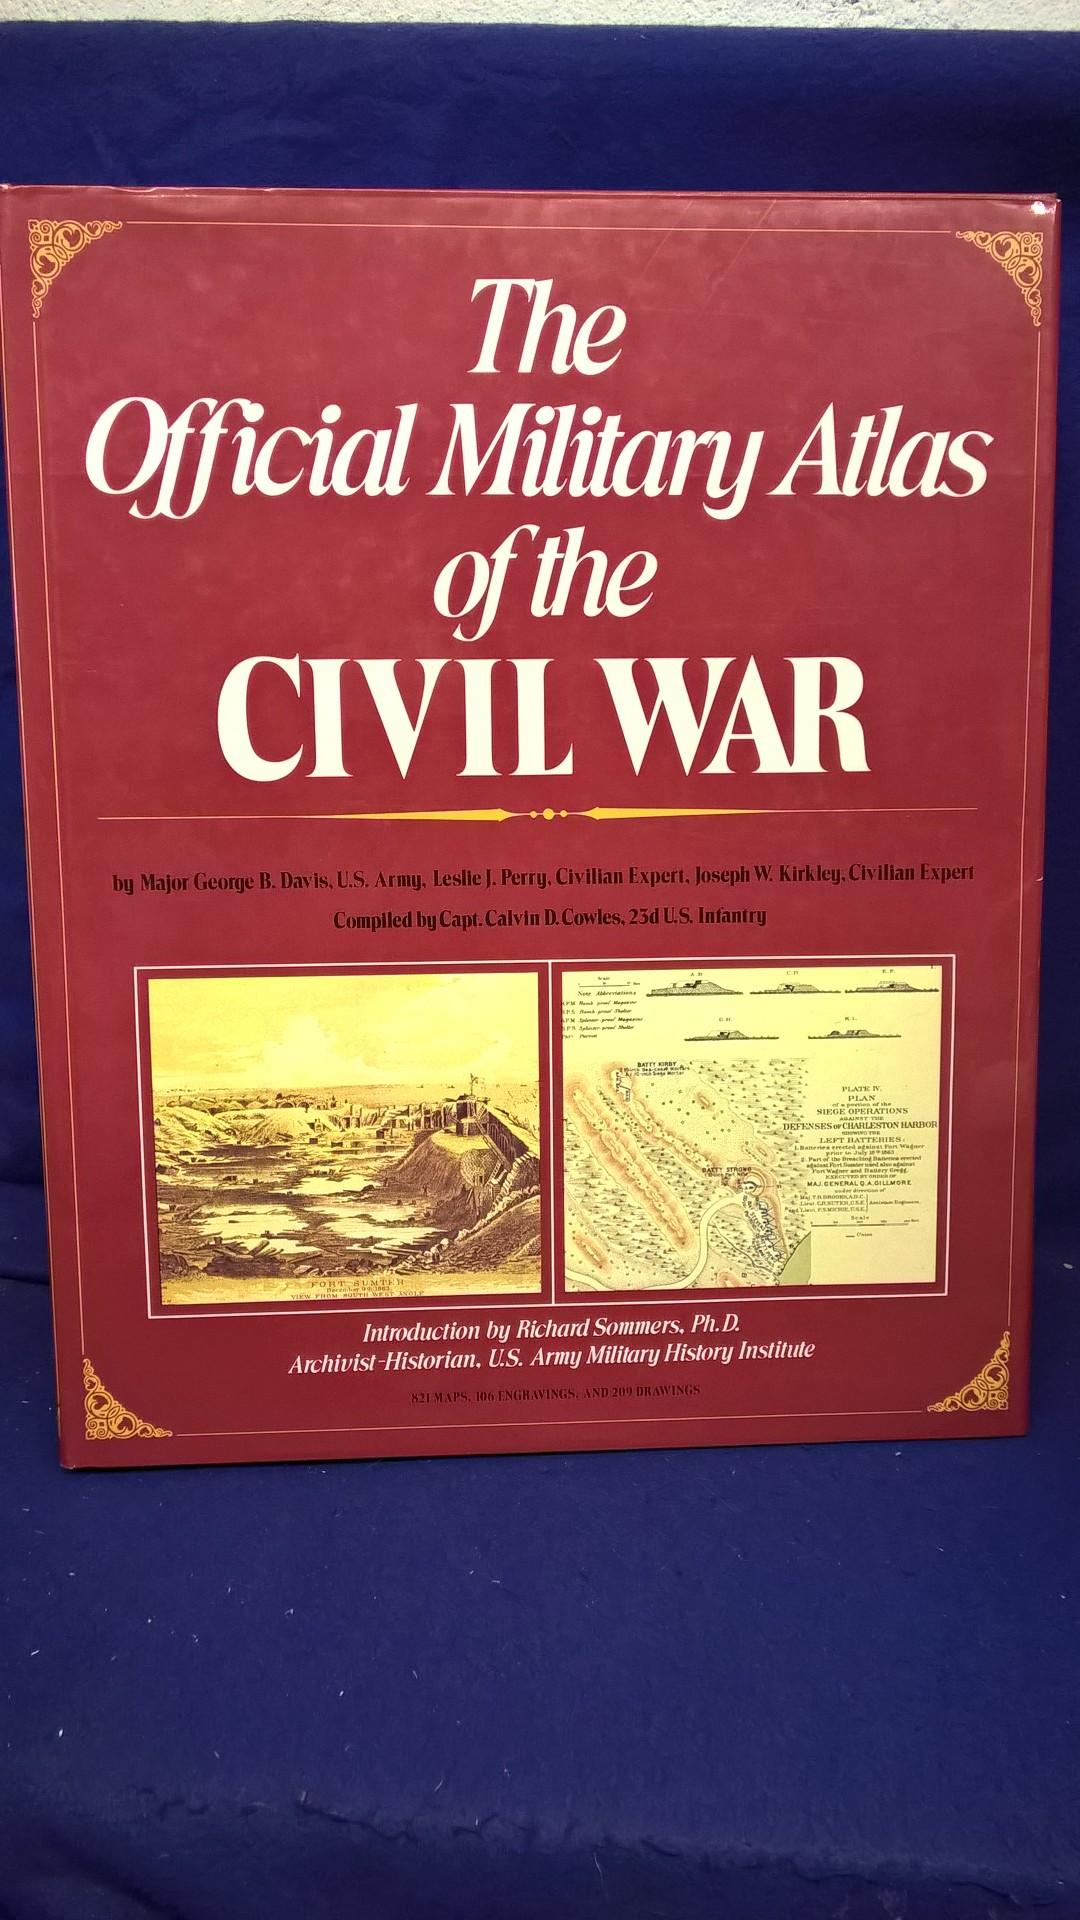 The Official Military Atlas of the Civil War. Großformatiges Prachtwerk mit über 800 farbigen Schlachtplänen, 106 Kupferstichen und 209 Zeichnungen.